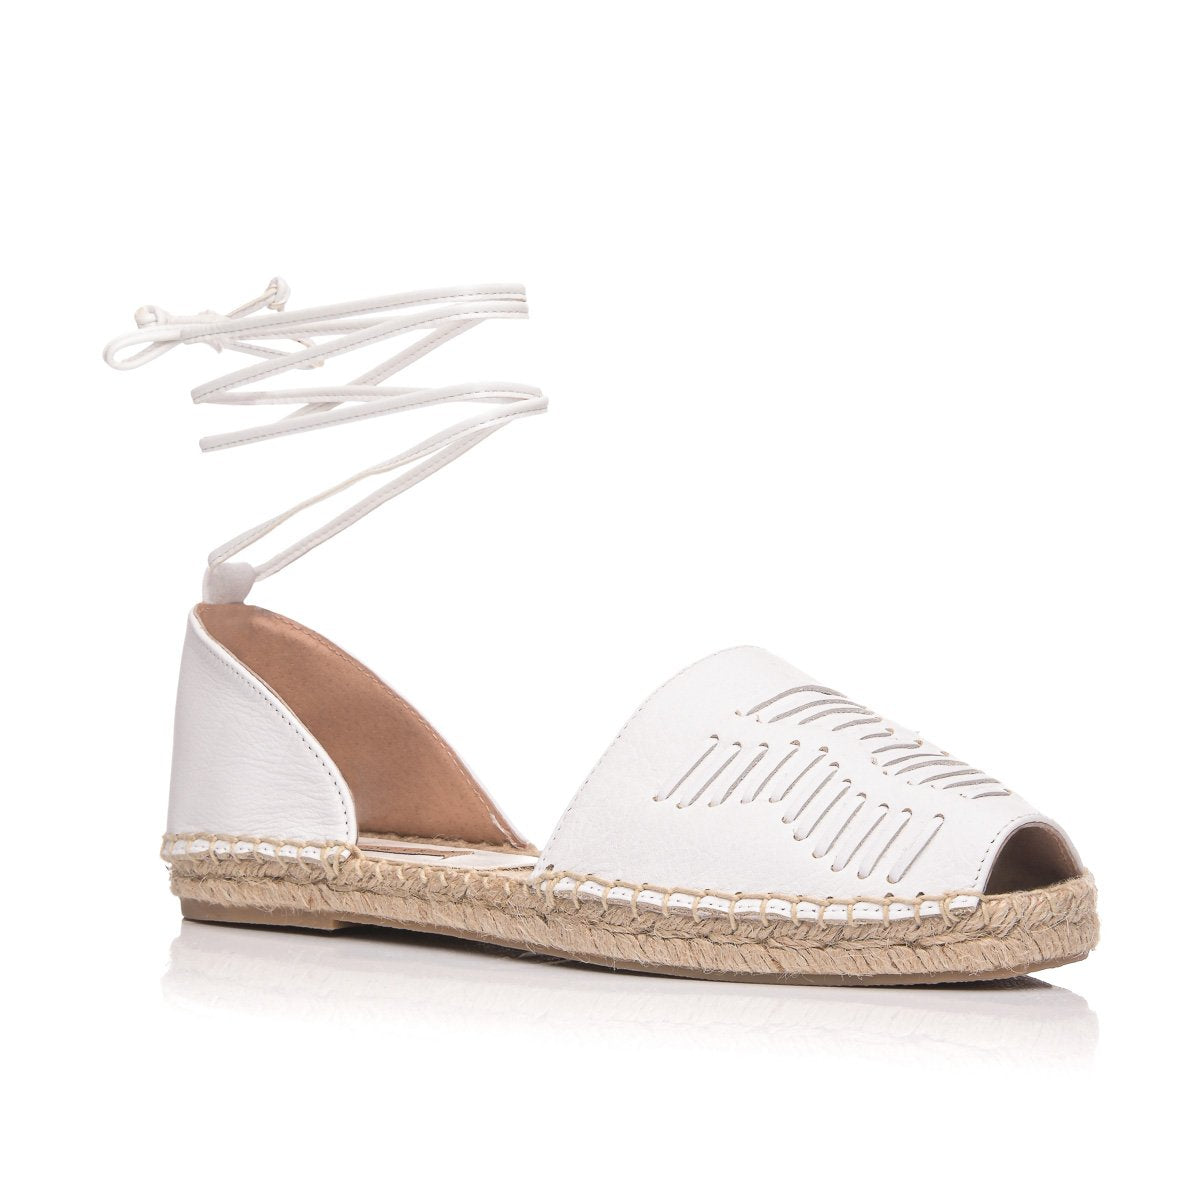 CLARA DURAN ESPADRILLES WHITE LEATHER